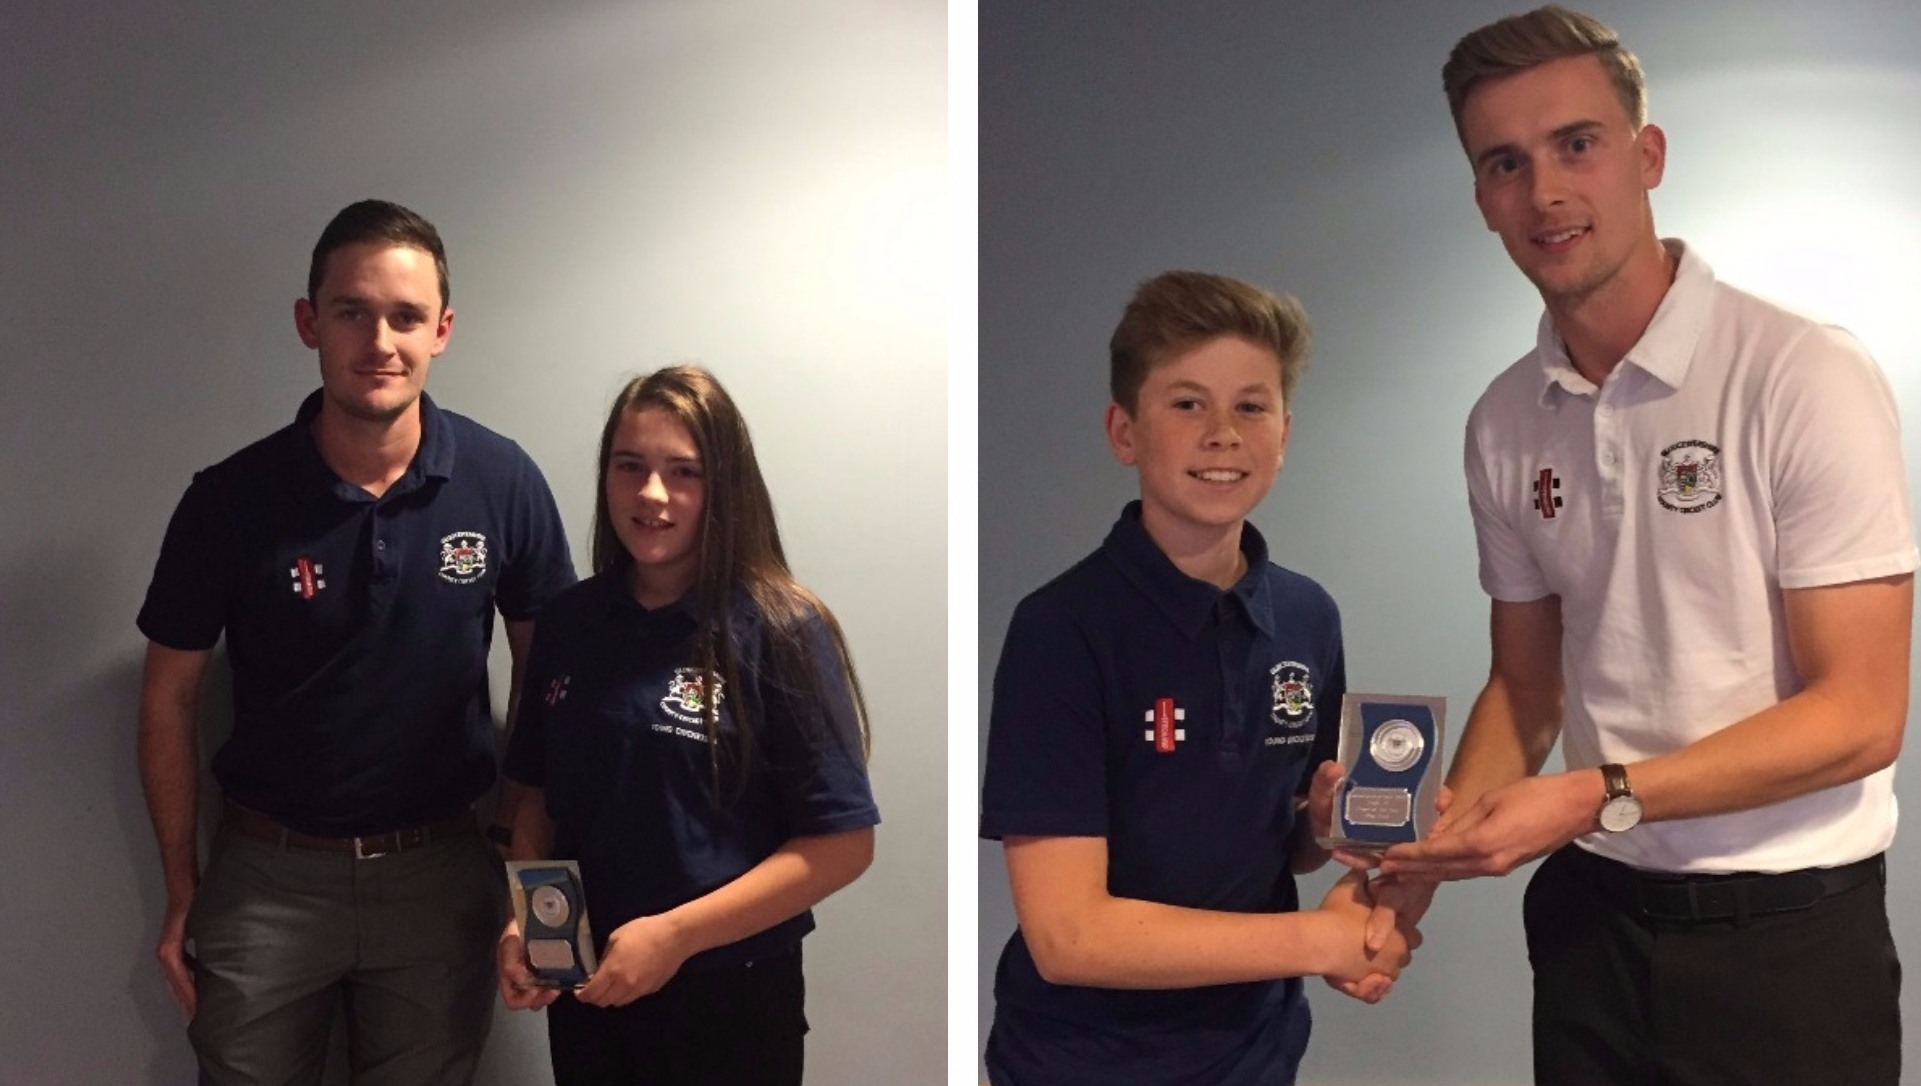 Glos County Age Group Awards Night – Report & Pics